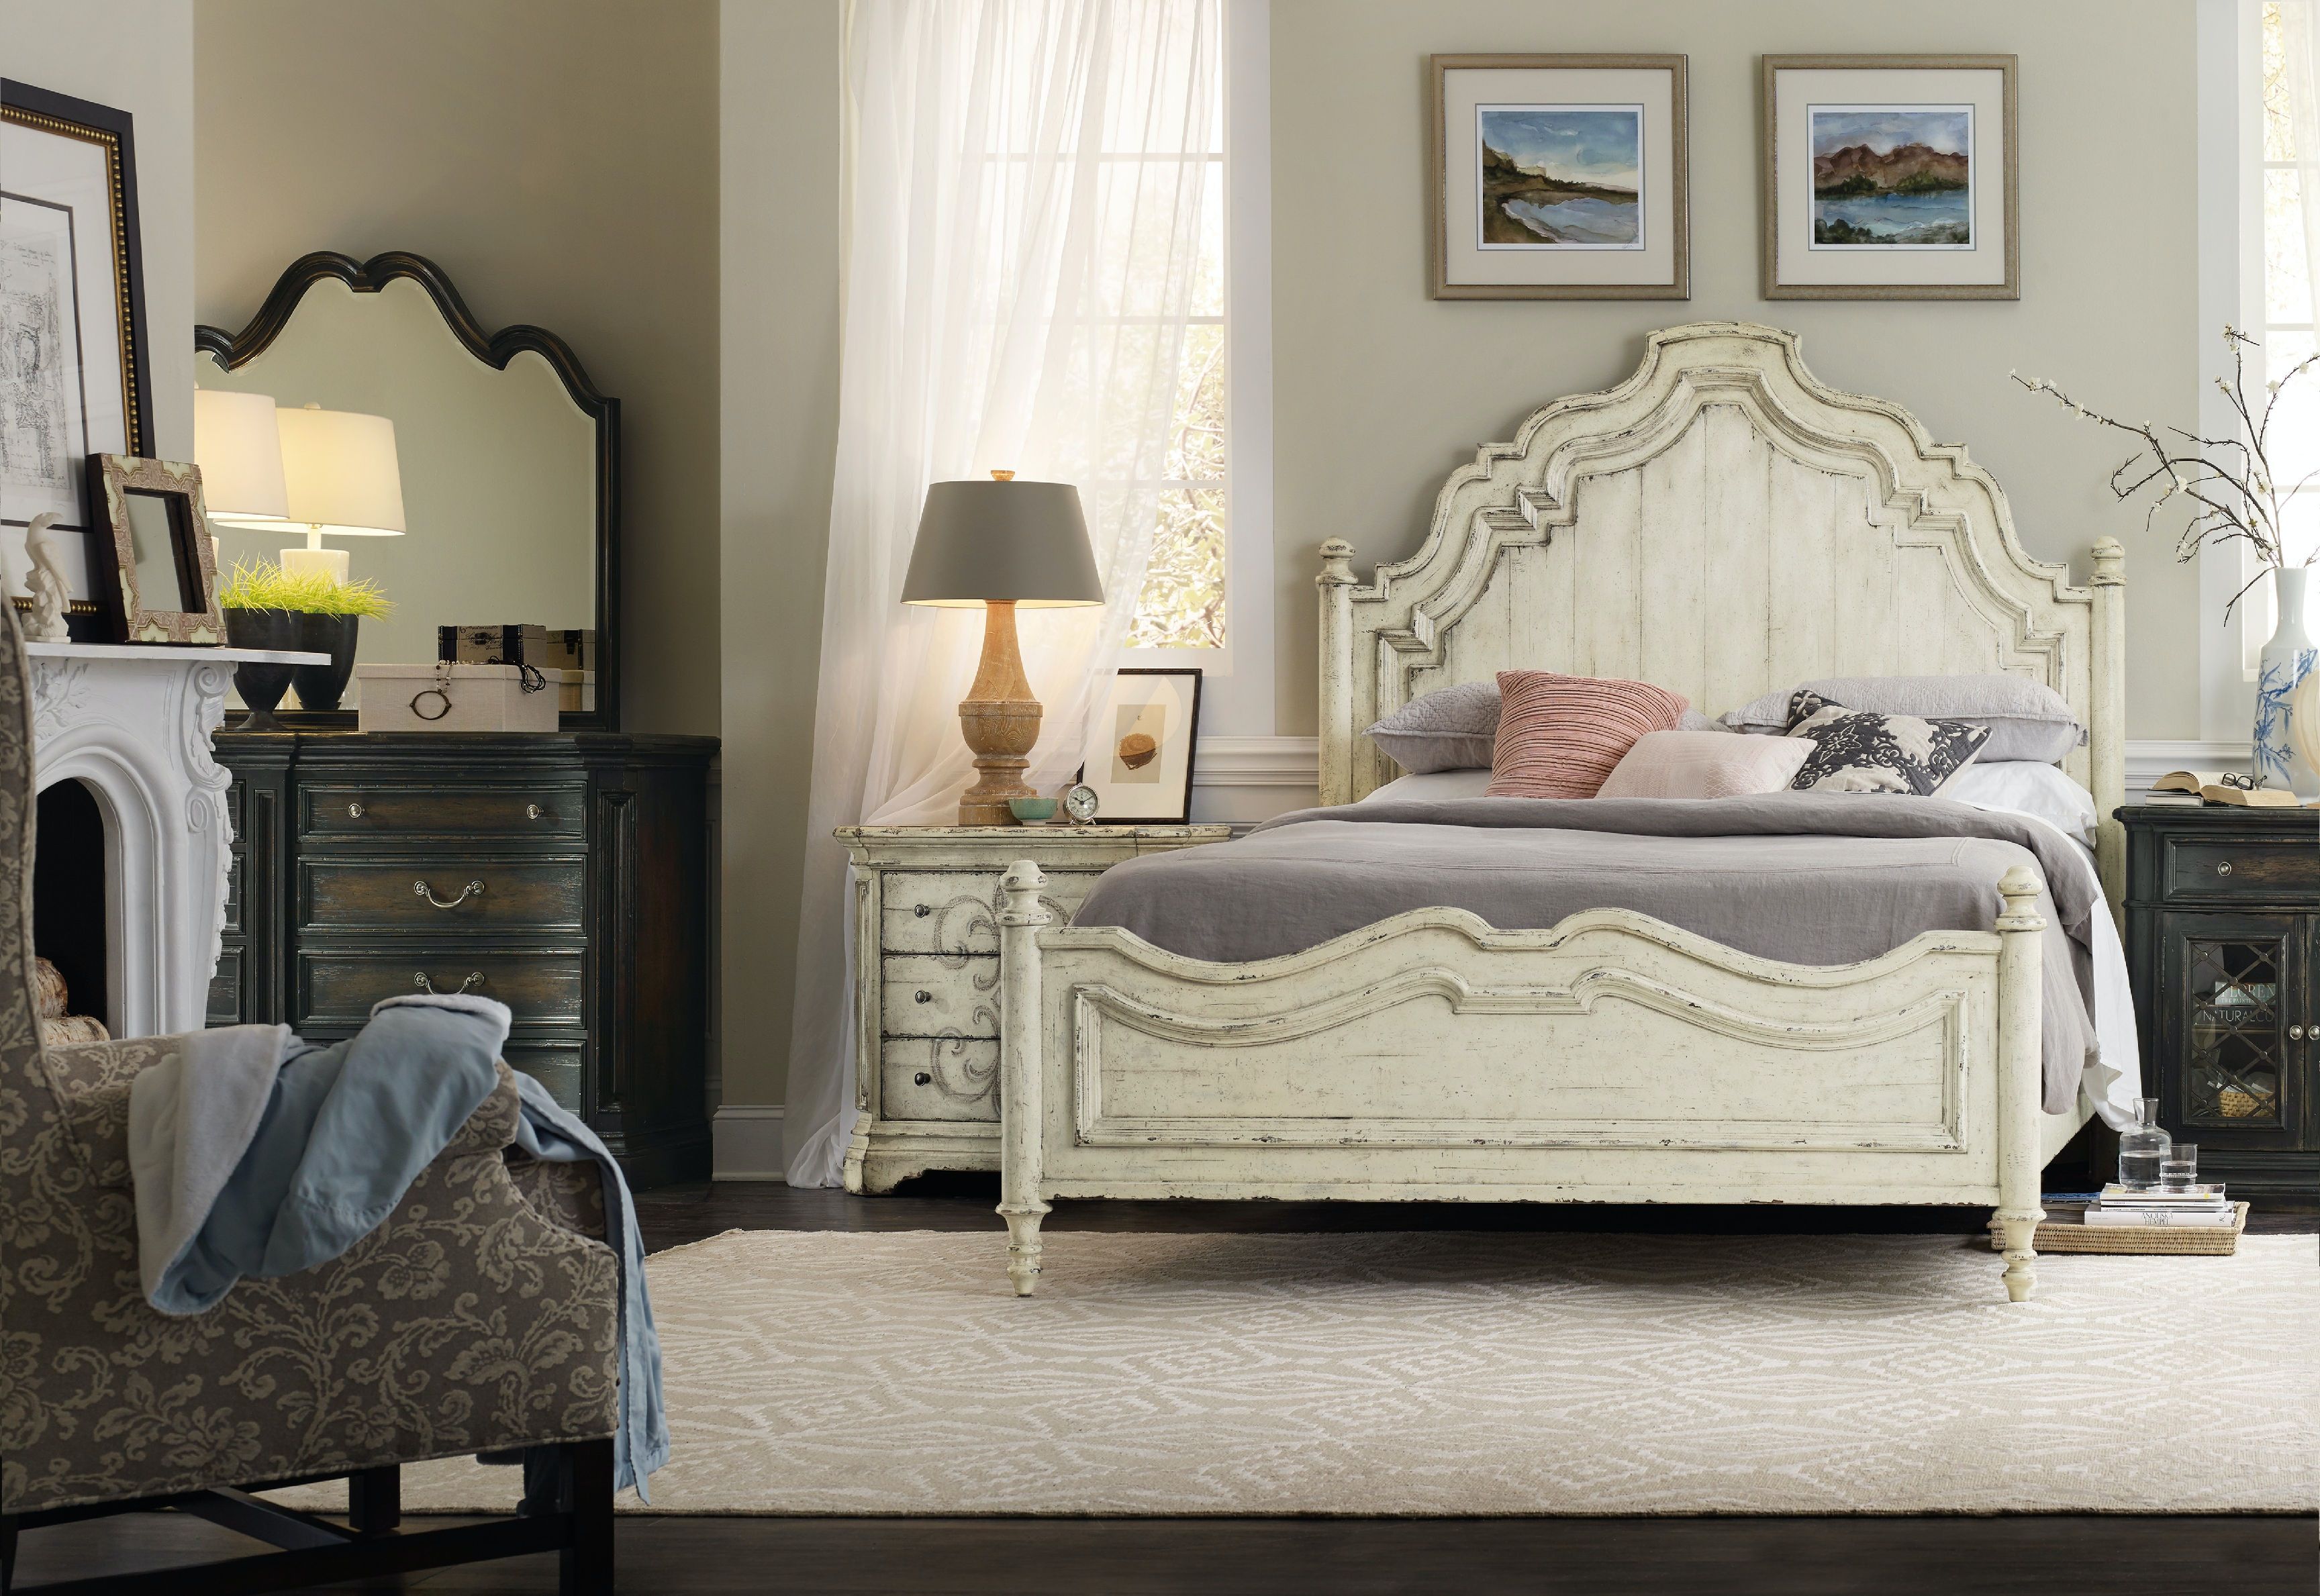 Hooker furniture bedroom auberose king panel bed 1595 for Hooker bedroom furniture